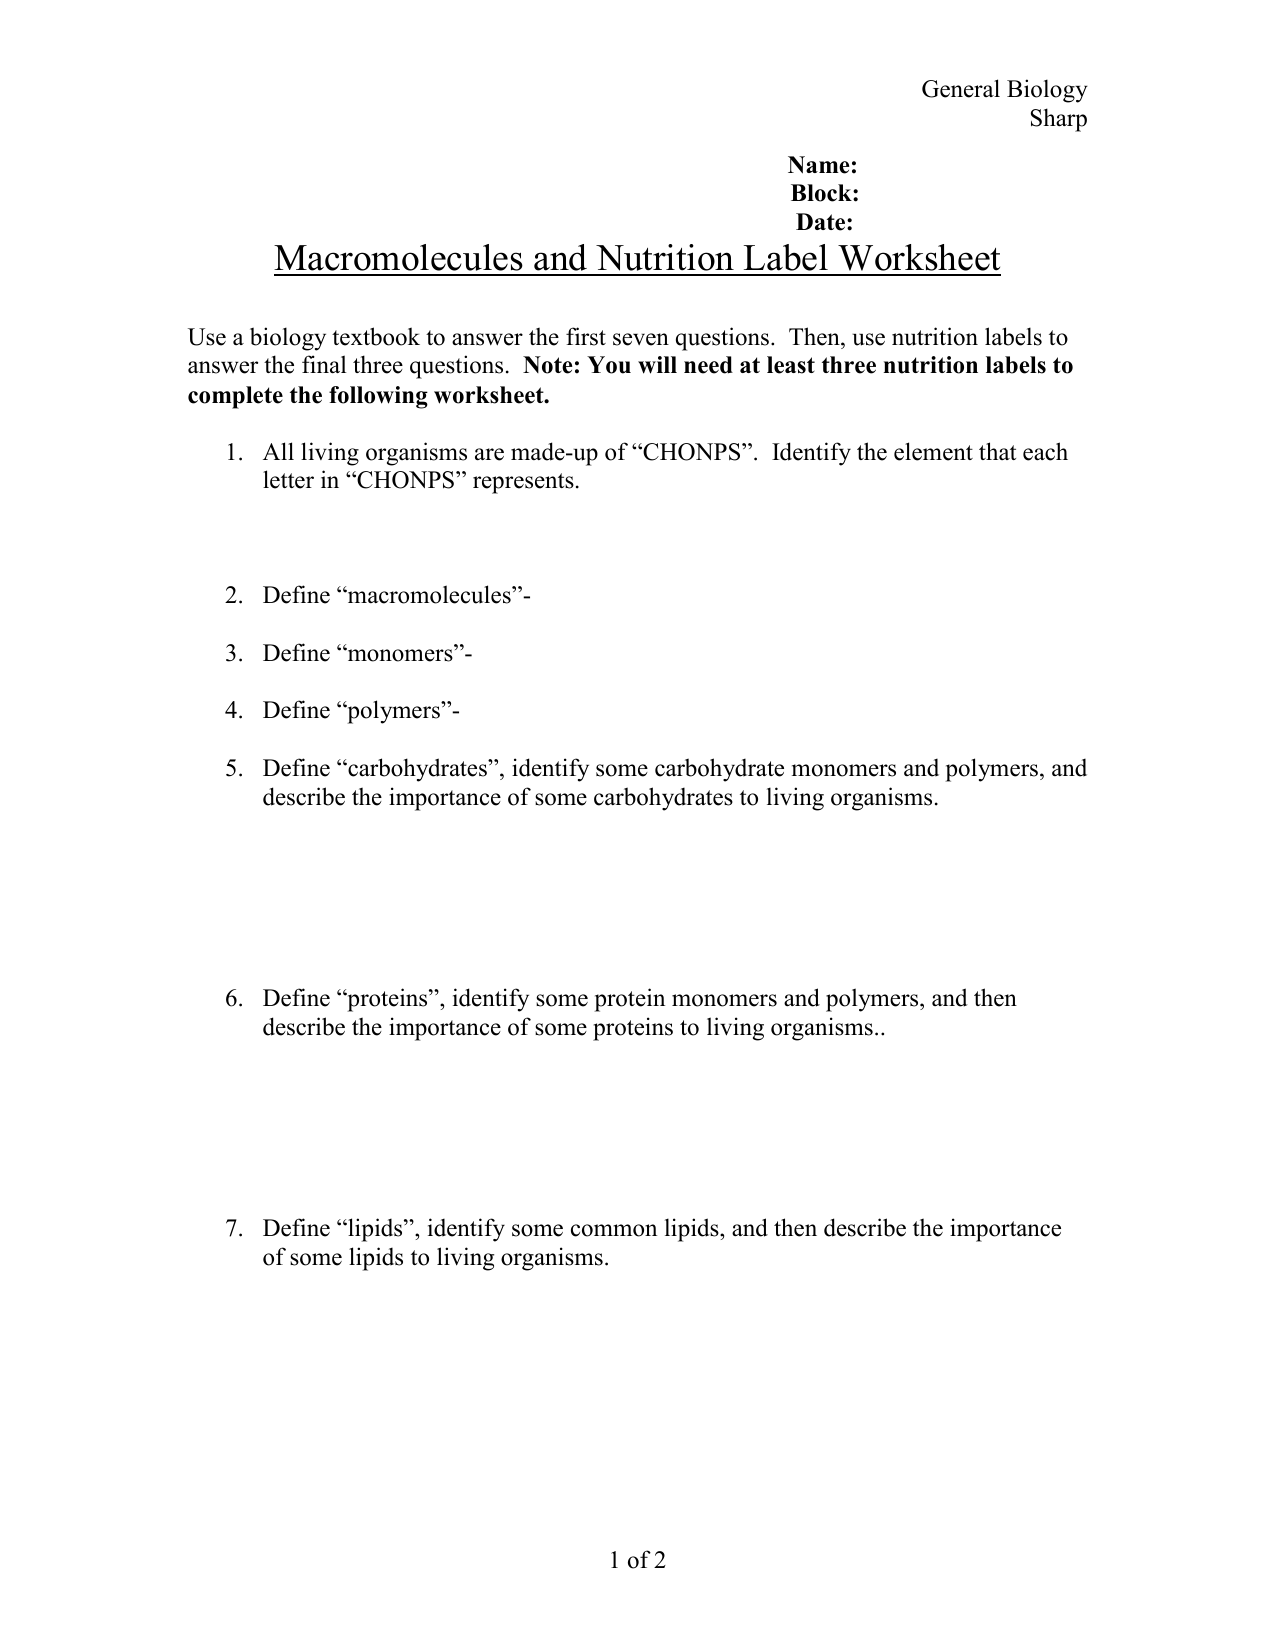 33 Macromolecules And Nutrition Label Worksheet Answers